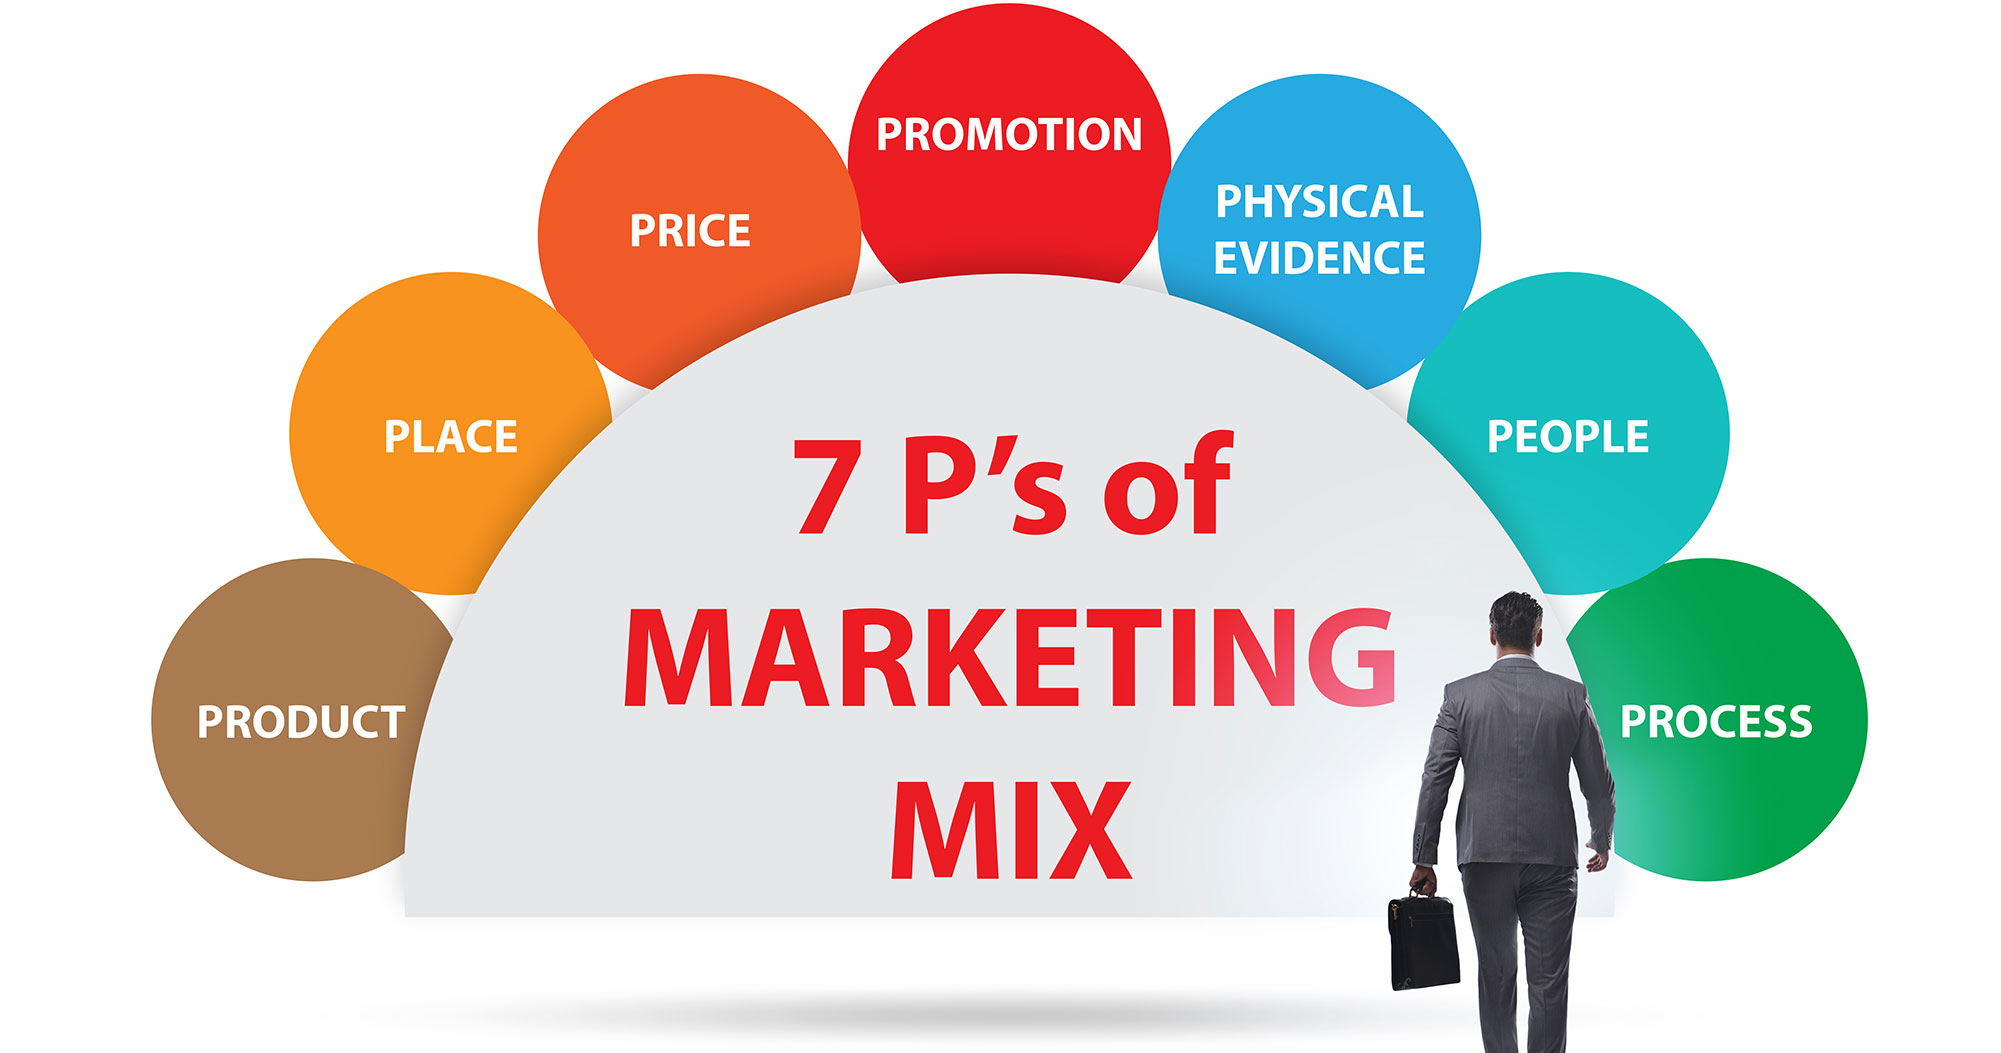 What Are 7Ps of the Marketing Mix?